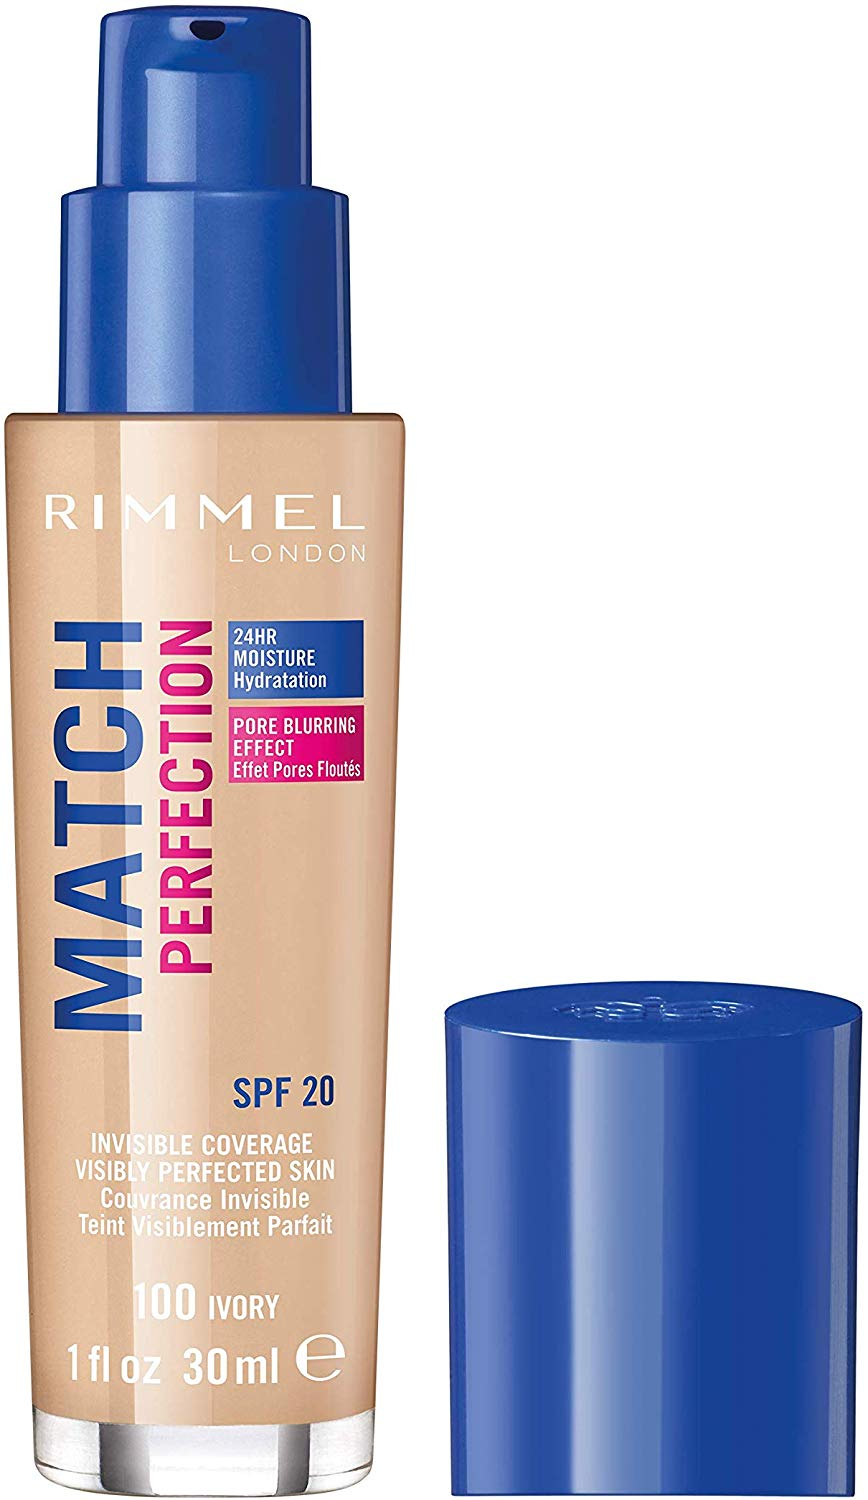 Rimmel London Match Perfection Liquid Foundation,30 ml Only £4.66 for Prime Member